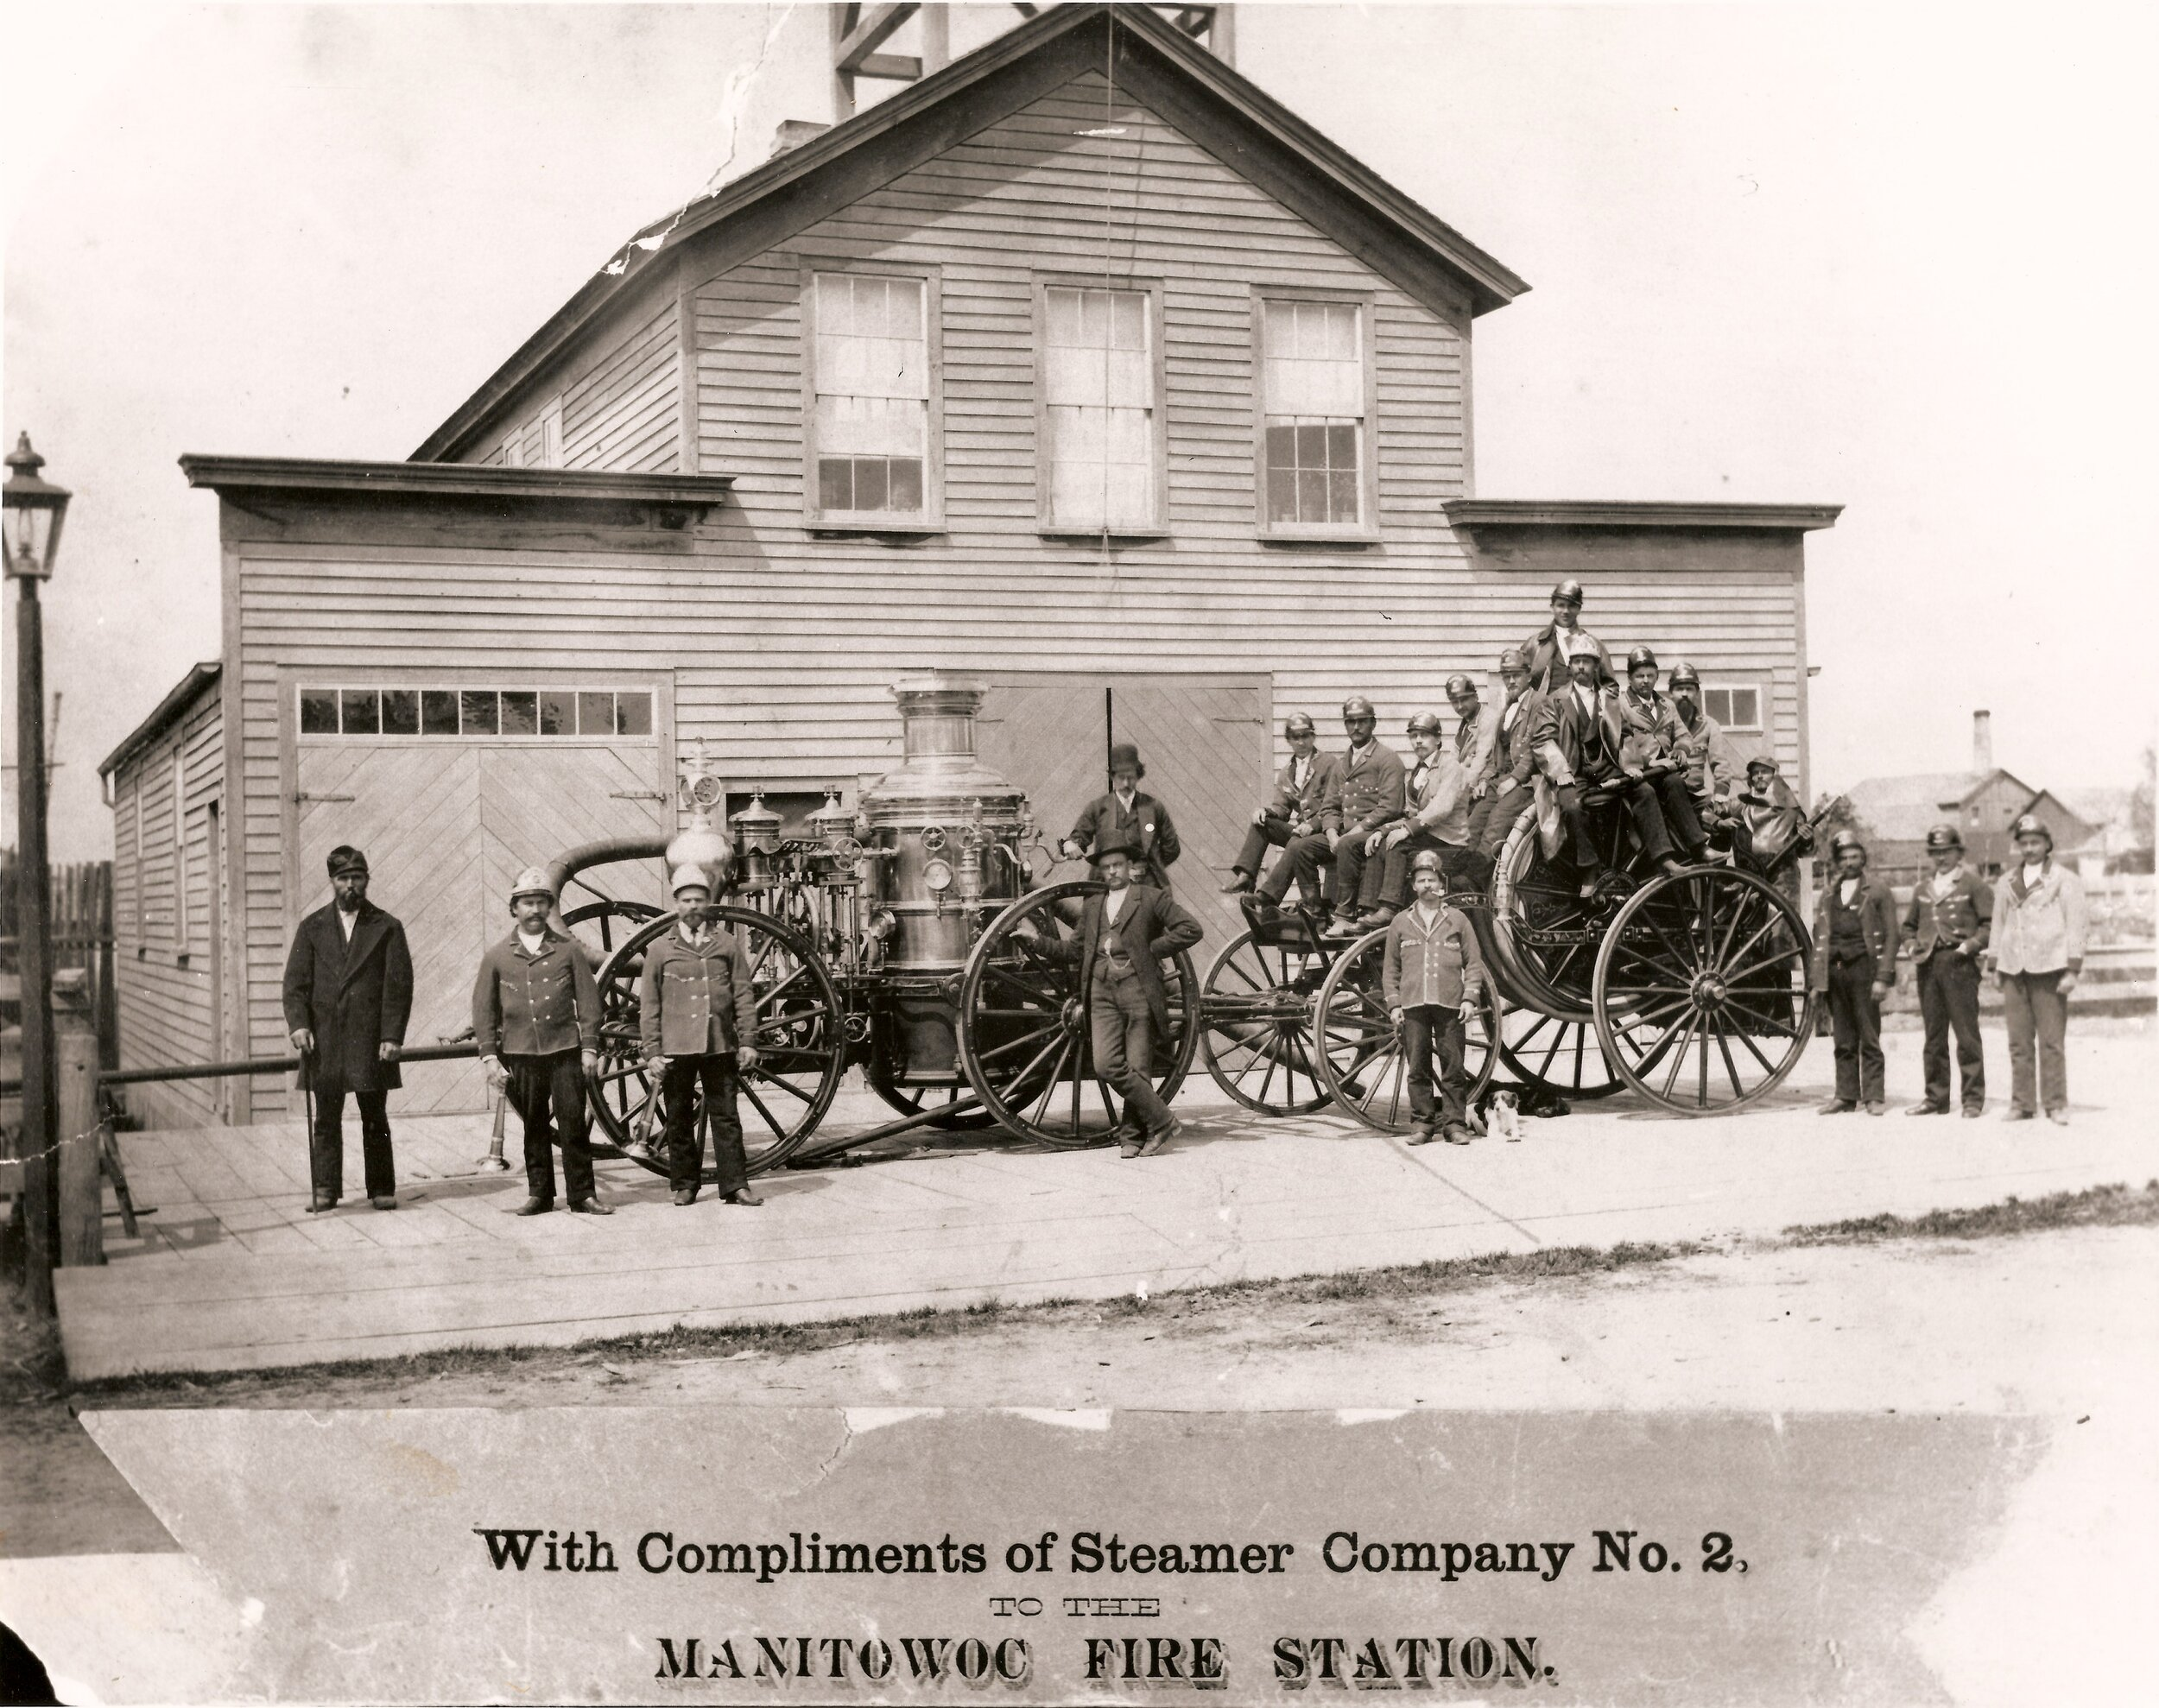 Steamer Company No. 2 in front of the North Side Firehouse on Commercial Street, Manitowoc, early 1900s.